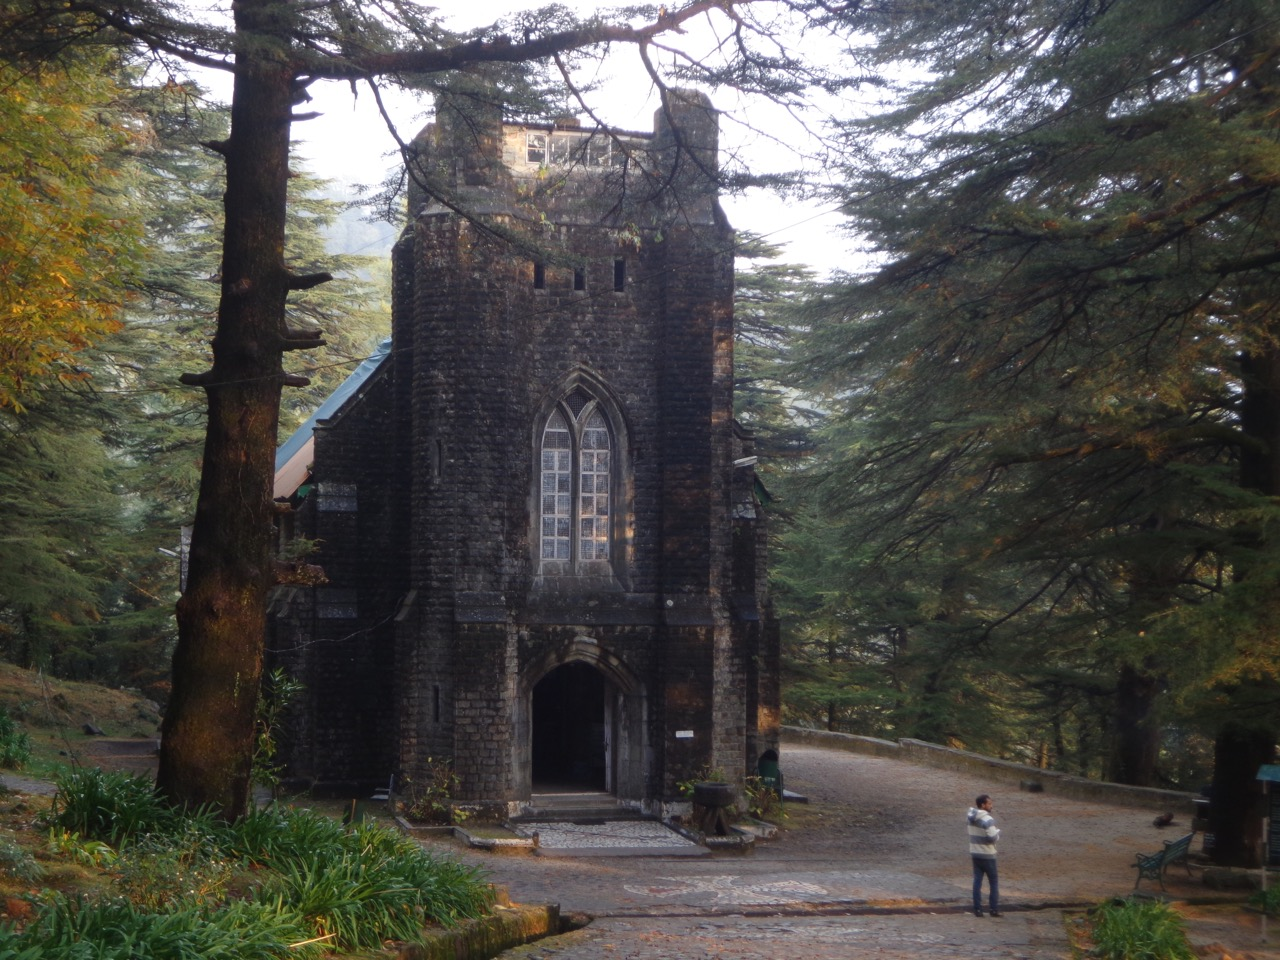 The Church is the only structure in Dharamshala that survived the 1905 Kangra earthquake. Parts of it have been rebuilt, including the spire and the roof.